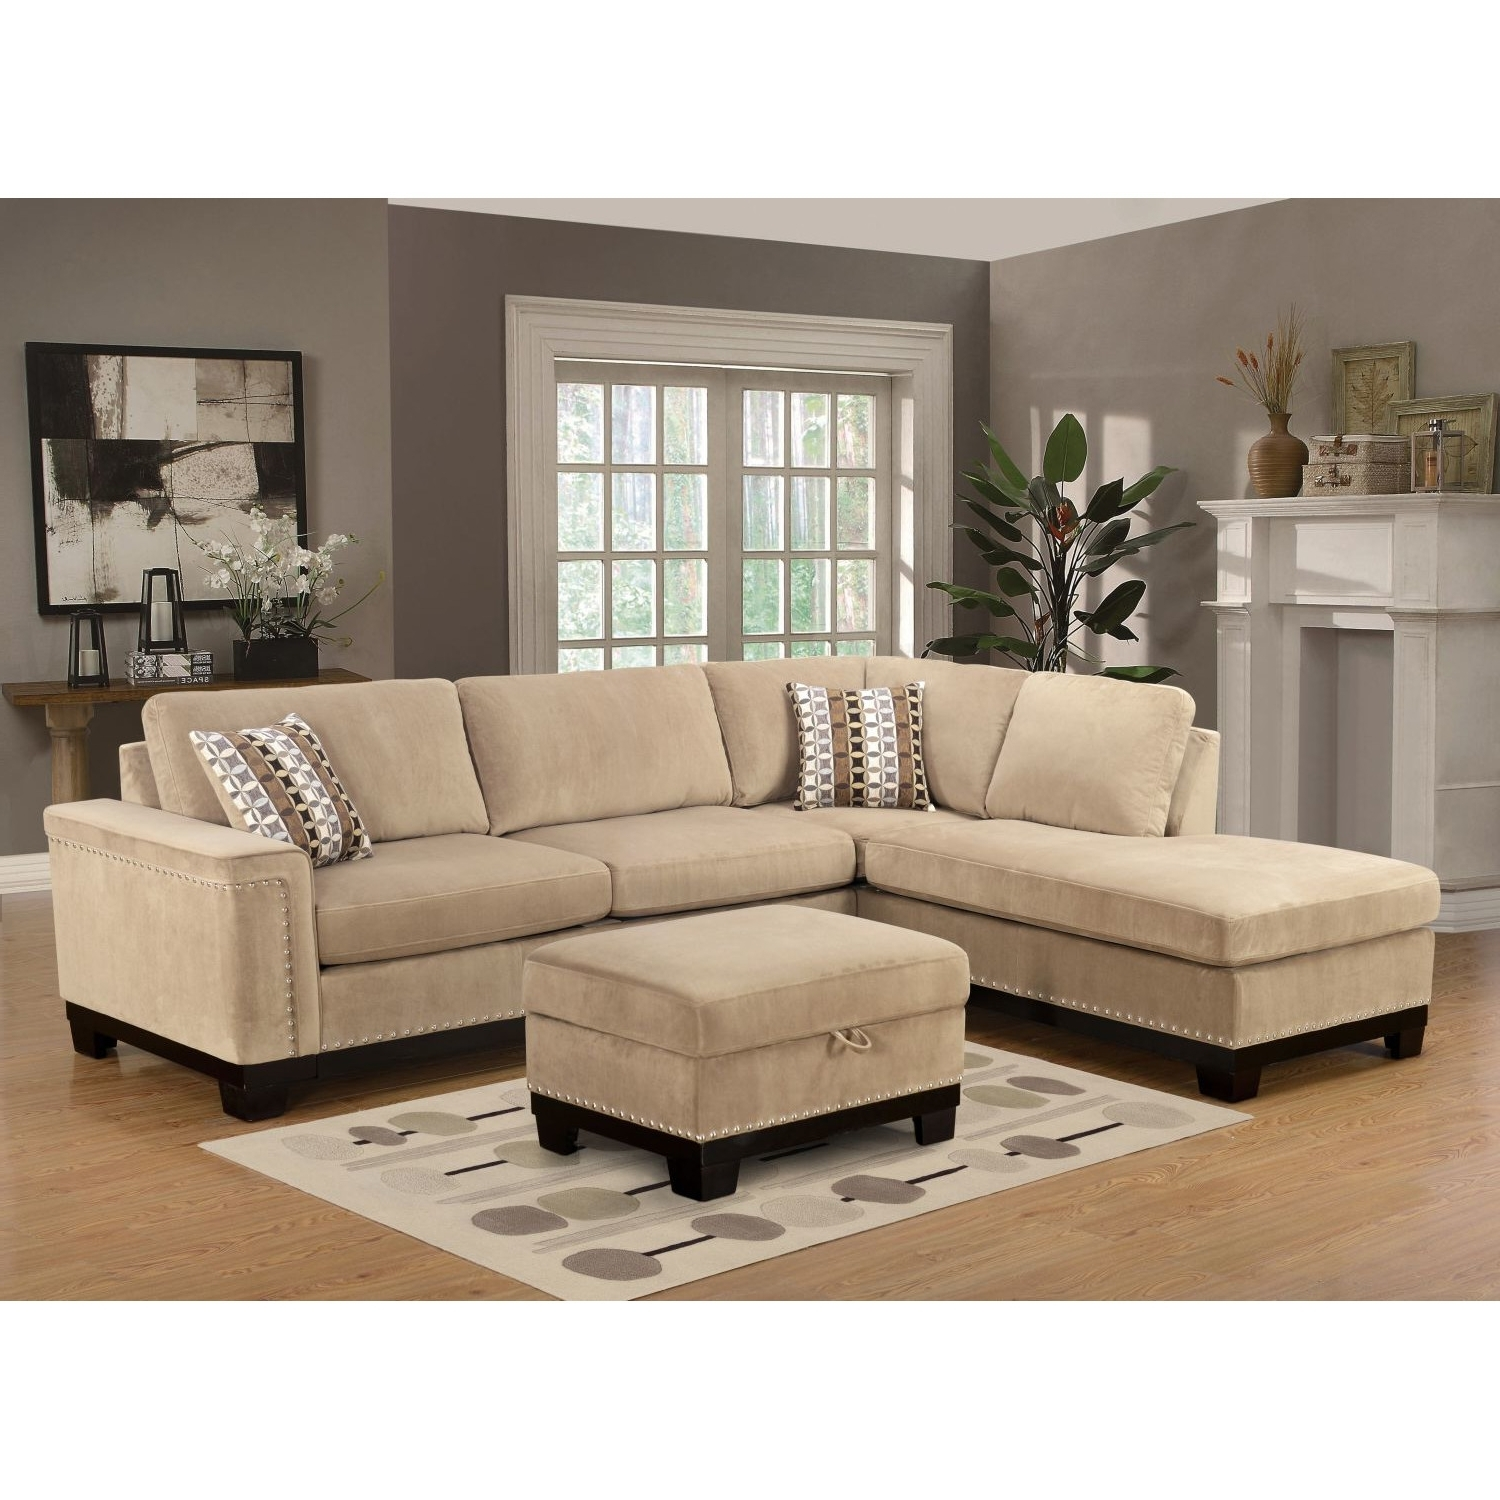 Popular Comfy Sectional Sofas With Regard To Couch (View 14 of 15)